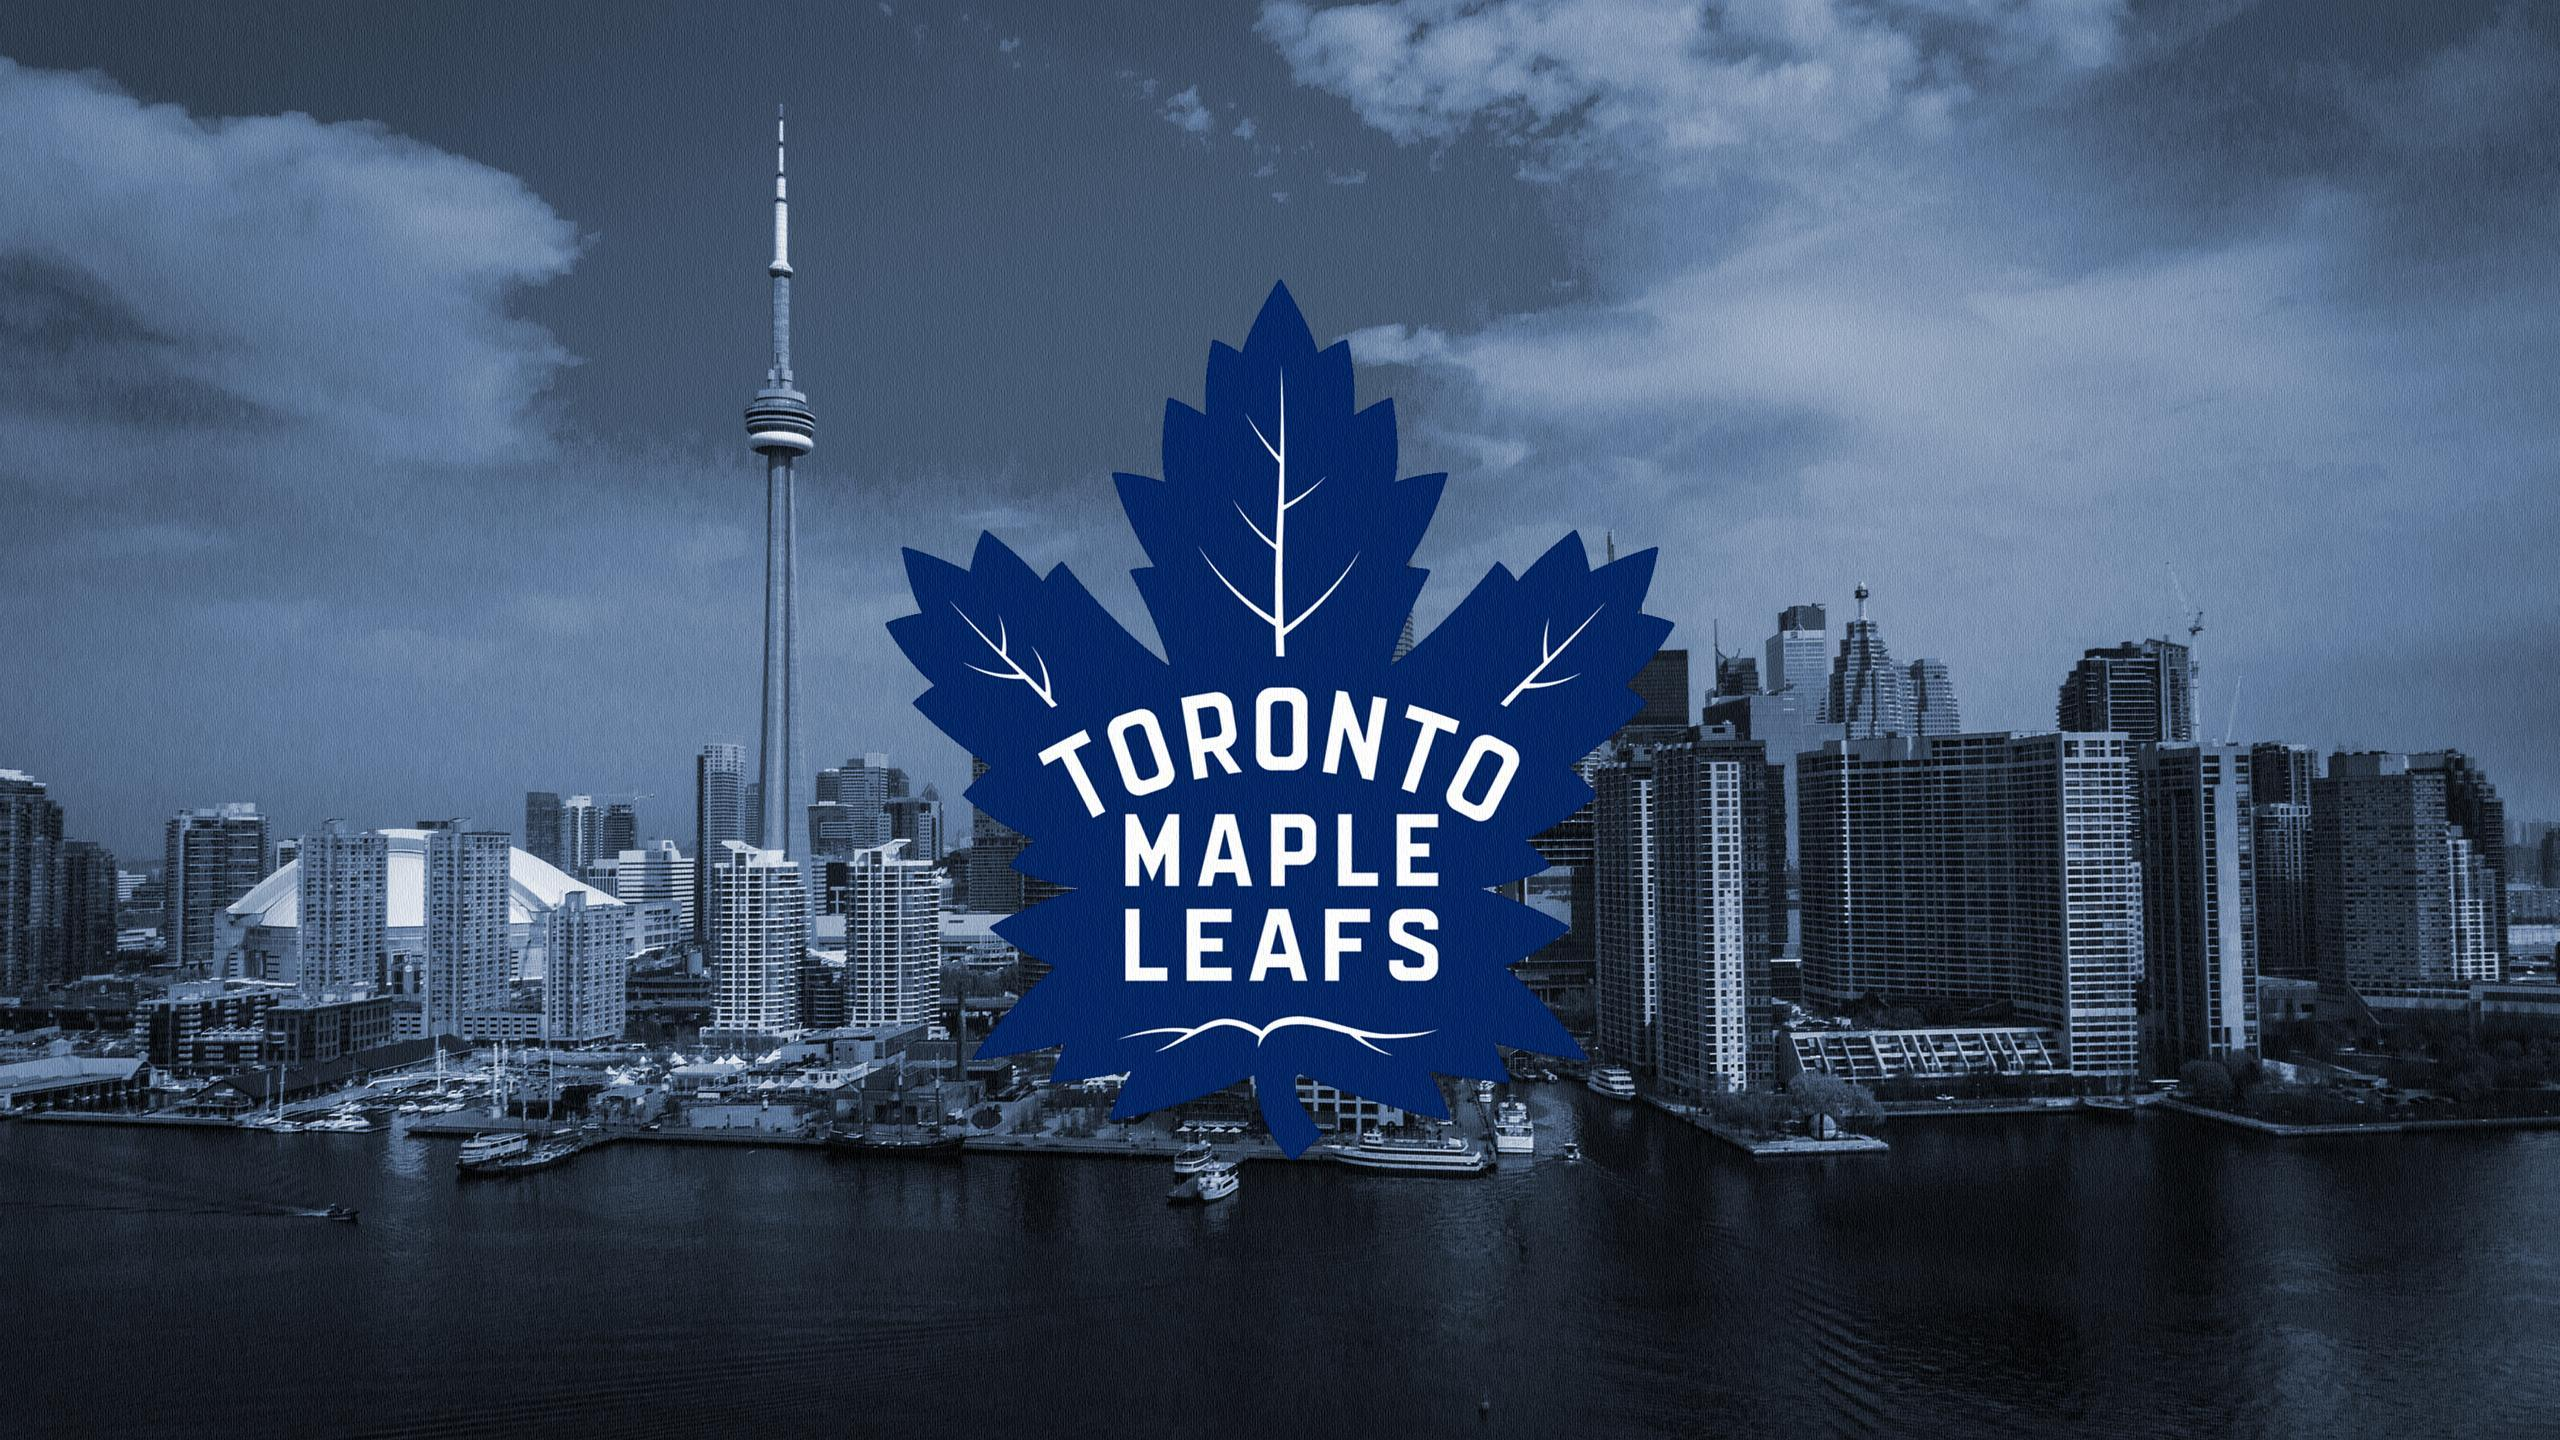 Toronto Maple Leafs Computer Wallpapers Wallpaper Cave